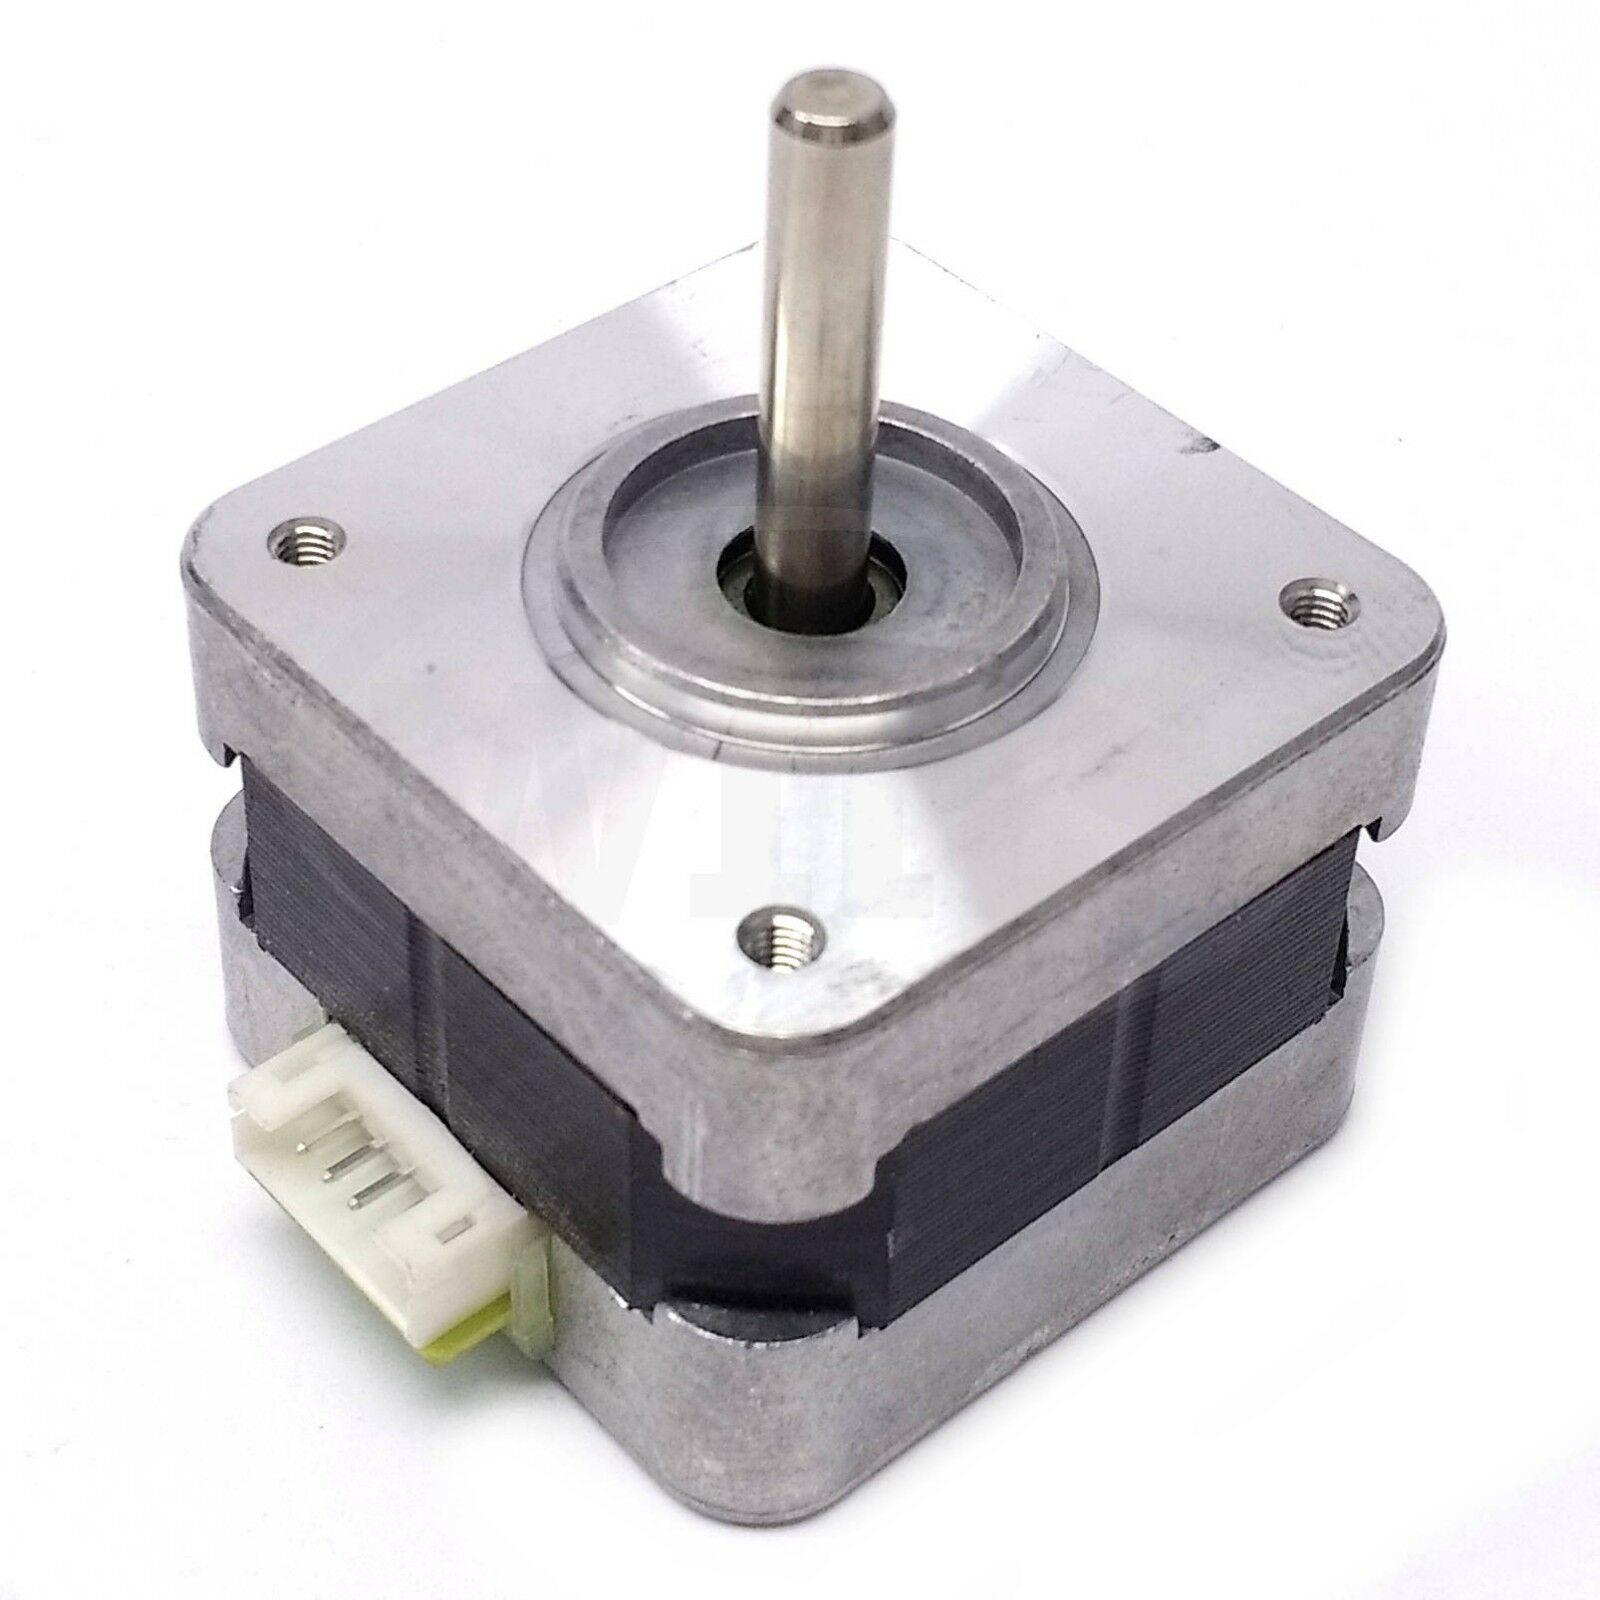 High End Systems 05701602 Stepper Motor, 6-Pin, 5mm Dia Shaft